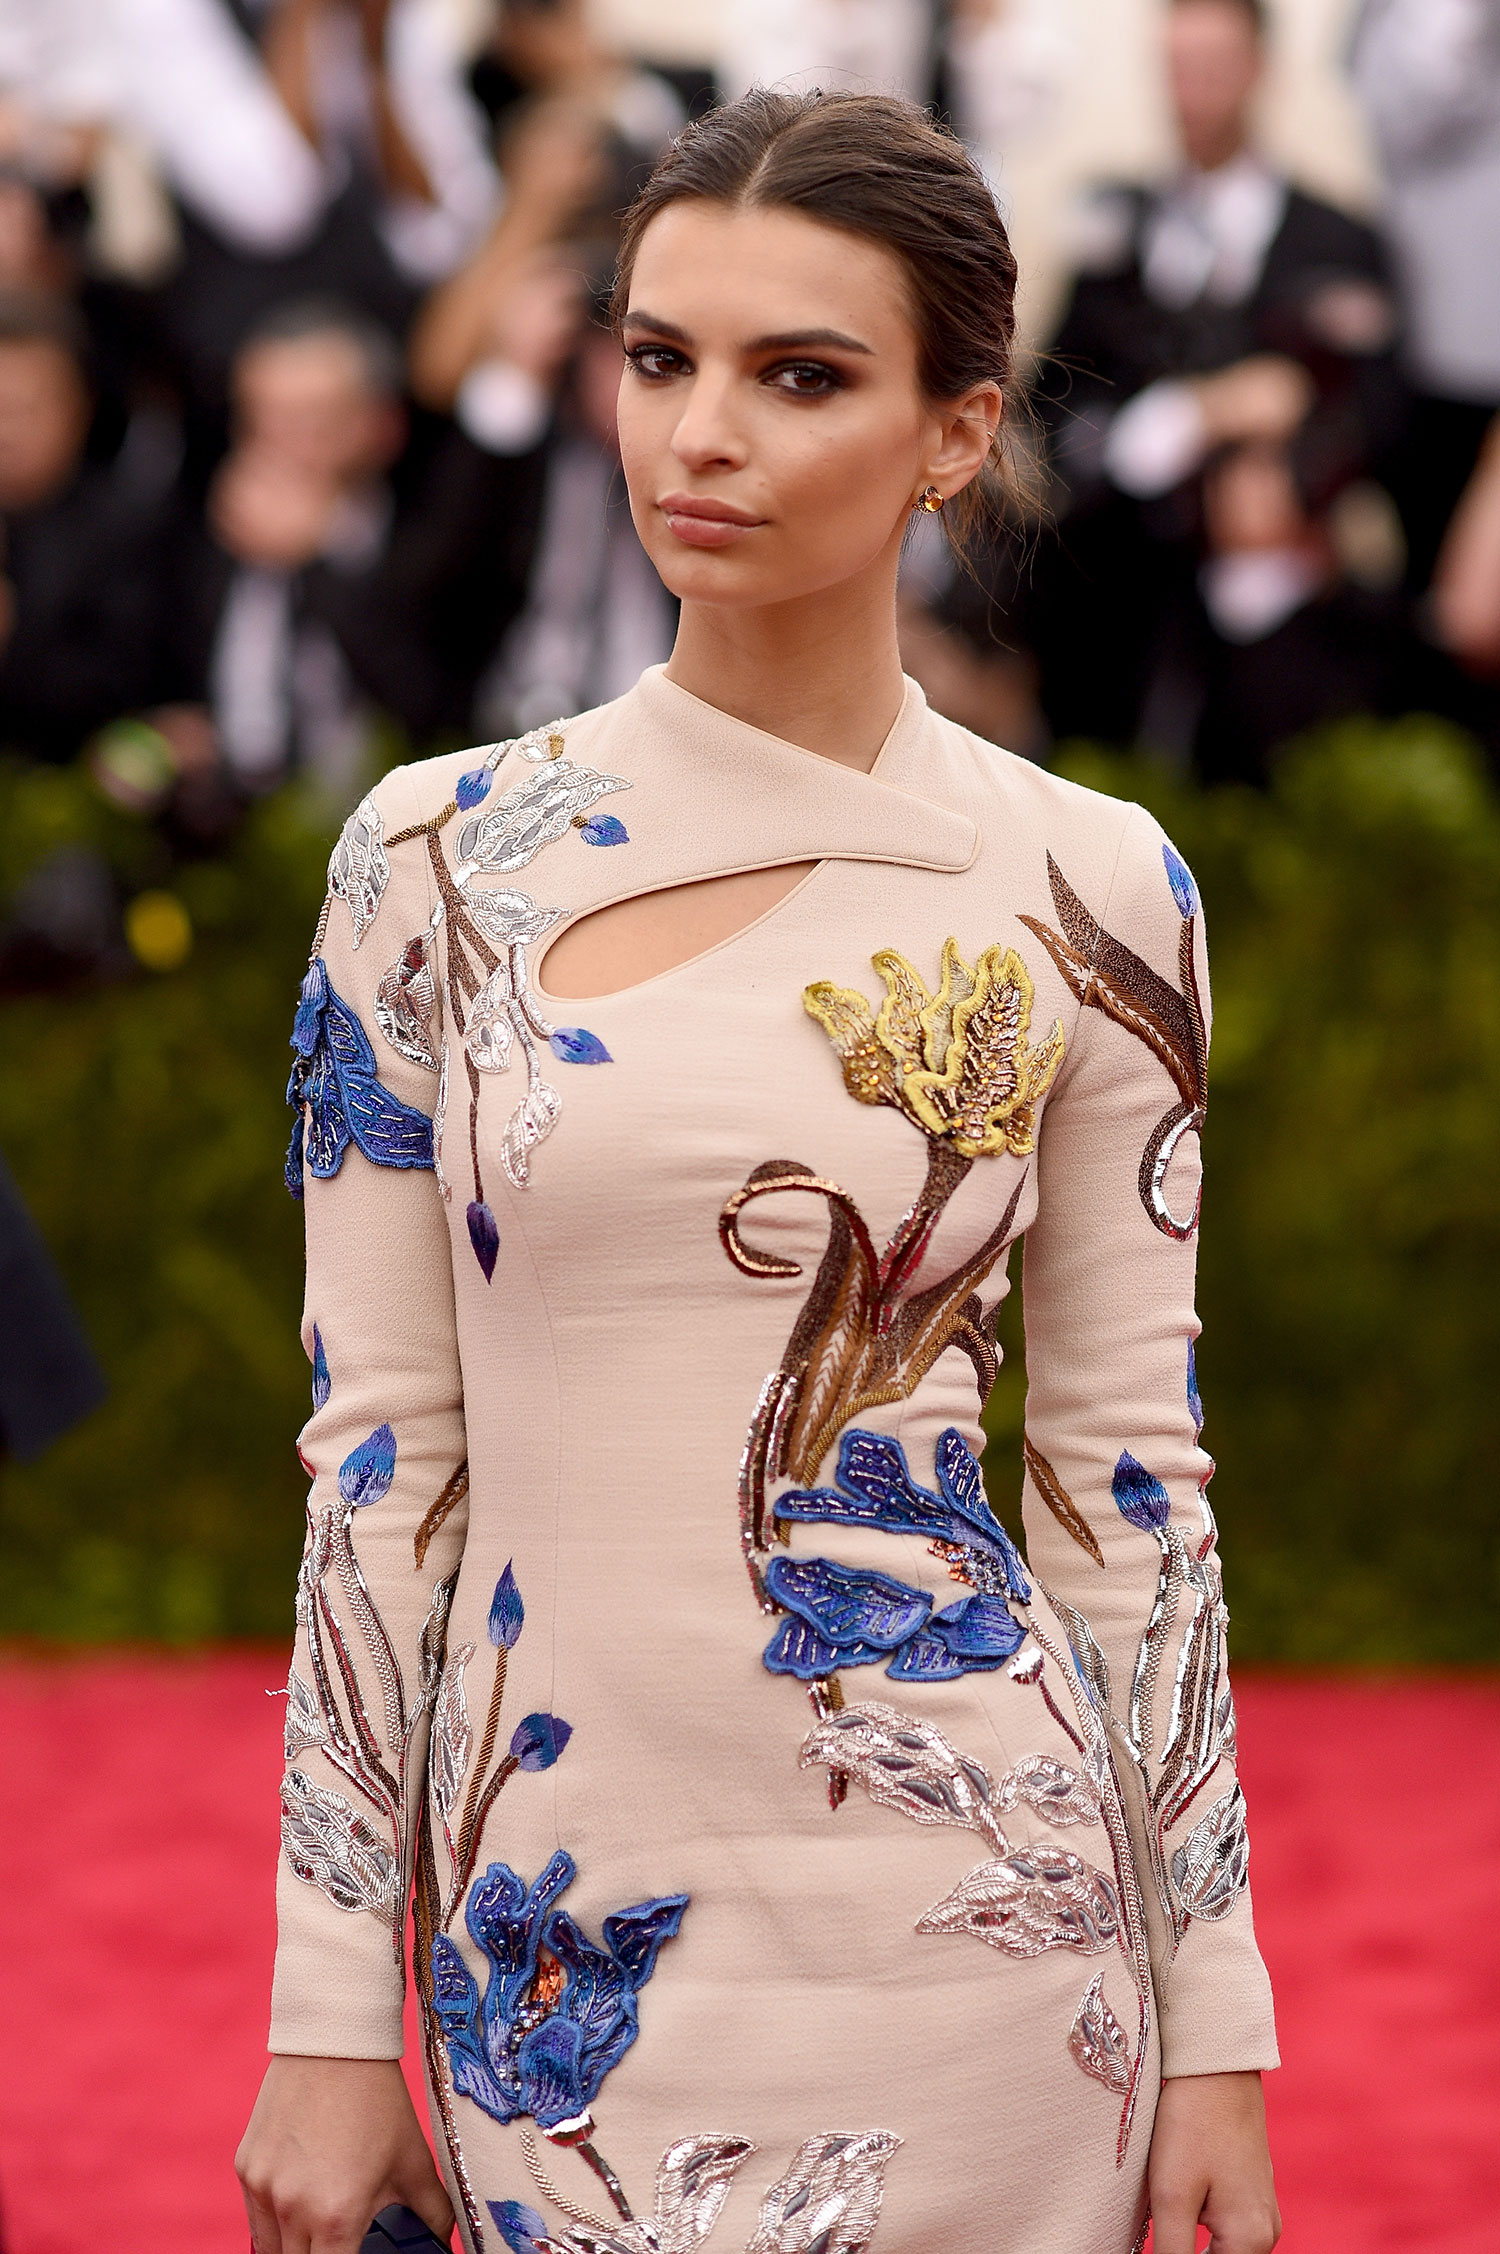 Emily Ratajkowski attends the 'China: Through The Looking Glass' Costume Institute Benefit Gala at the Metropolitan Museum of Art.